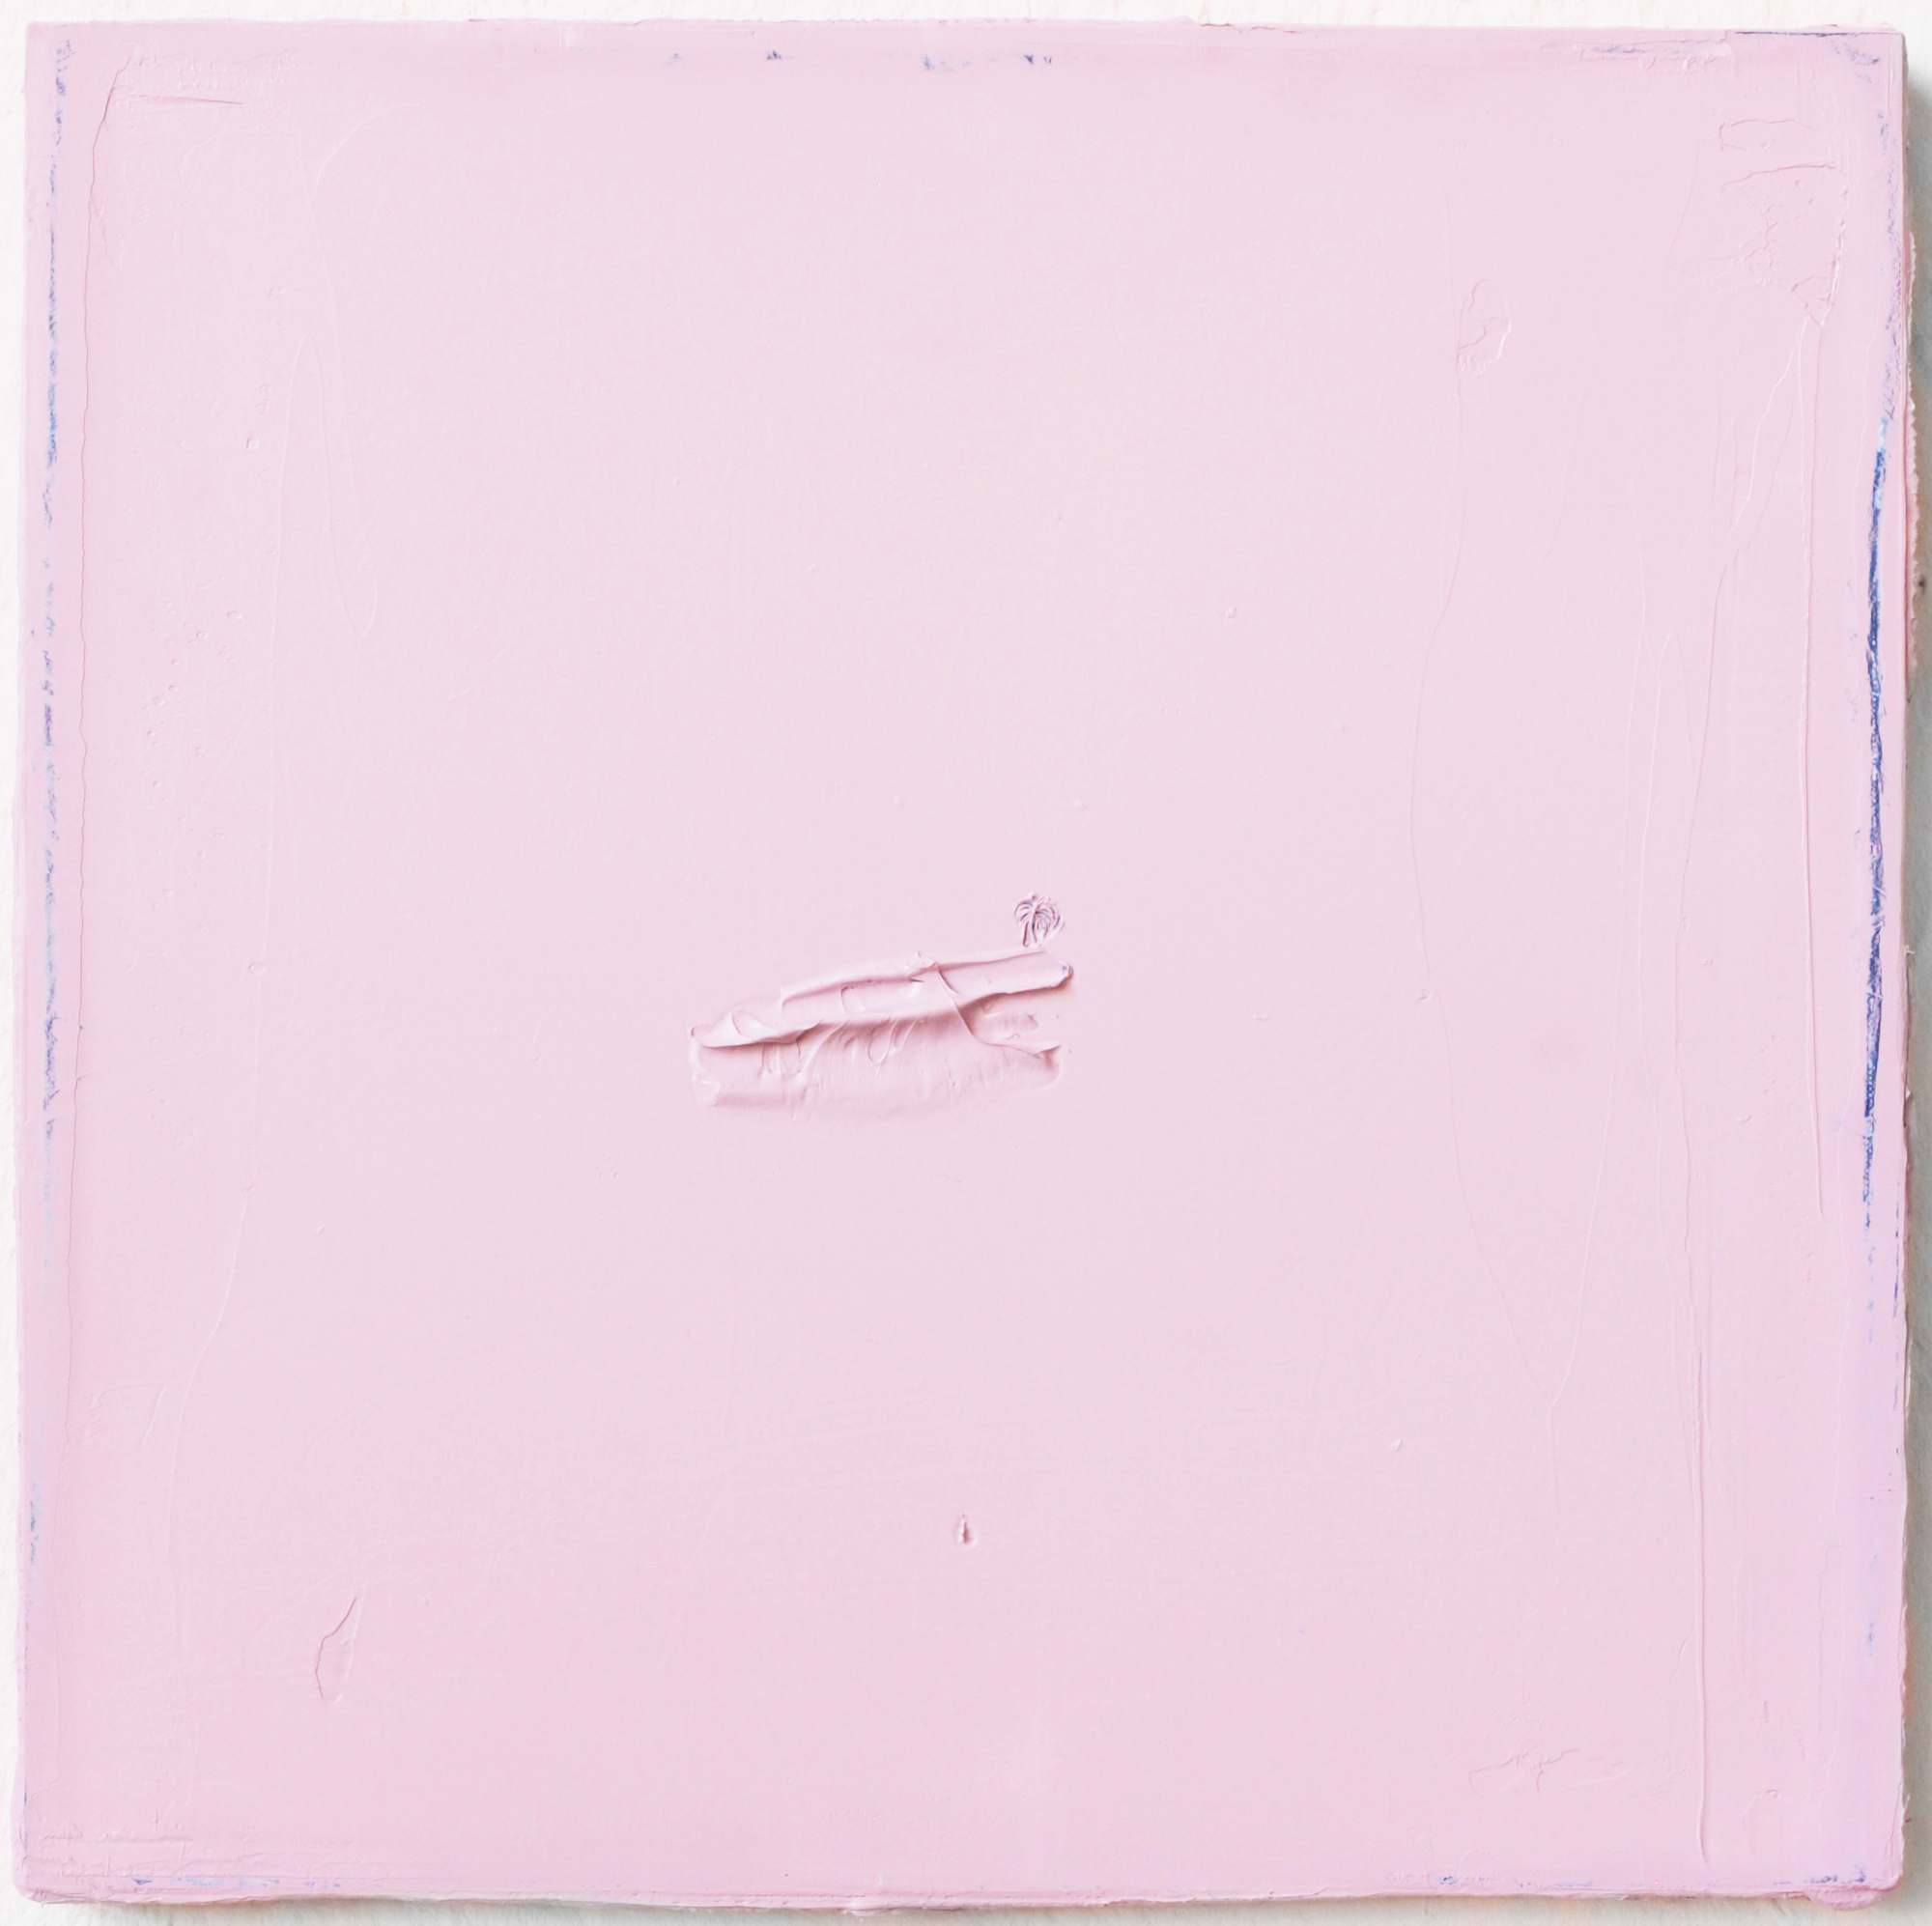 Felix Becker, untitled, (Palm Piece), 2019, Oil on paper on linen, 50 x 50 cm Felix Becker, untitled, (Palm Piece), 2019, Oil on paper on linen, 50 x 50 cm